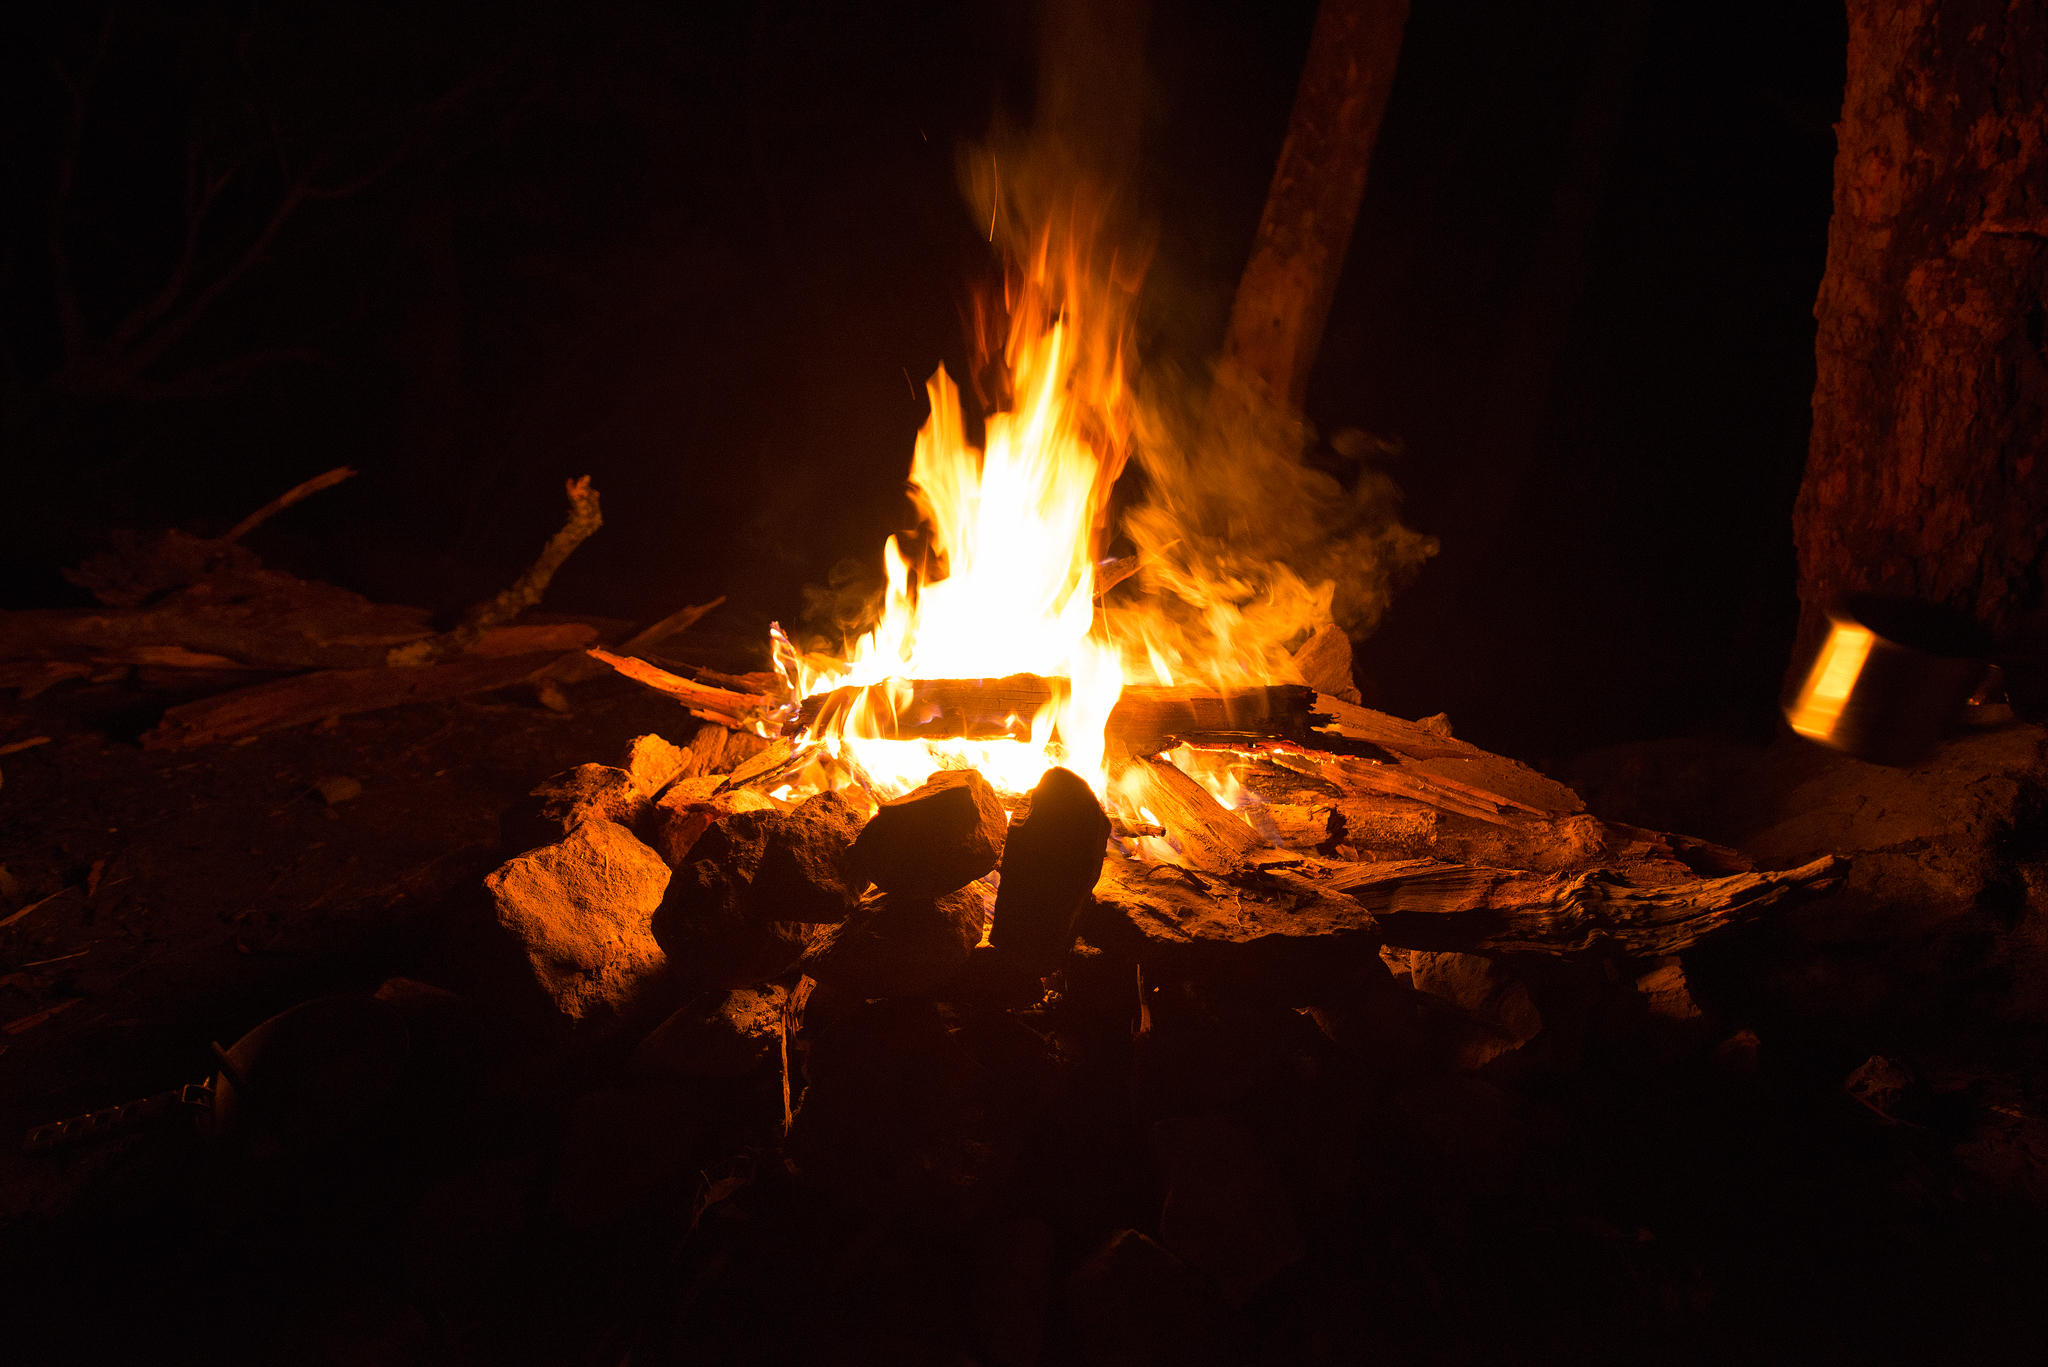 Tales around the campfire